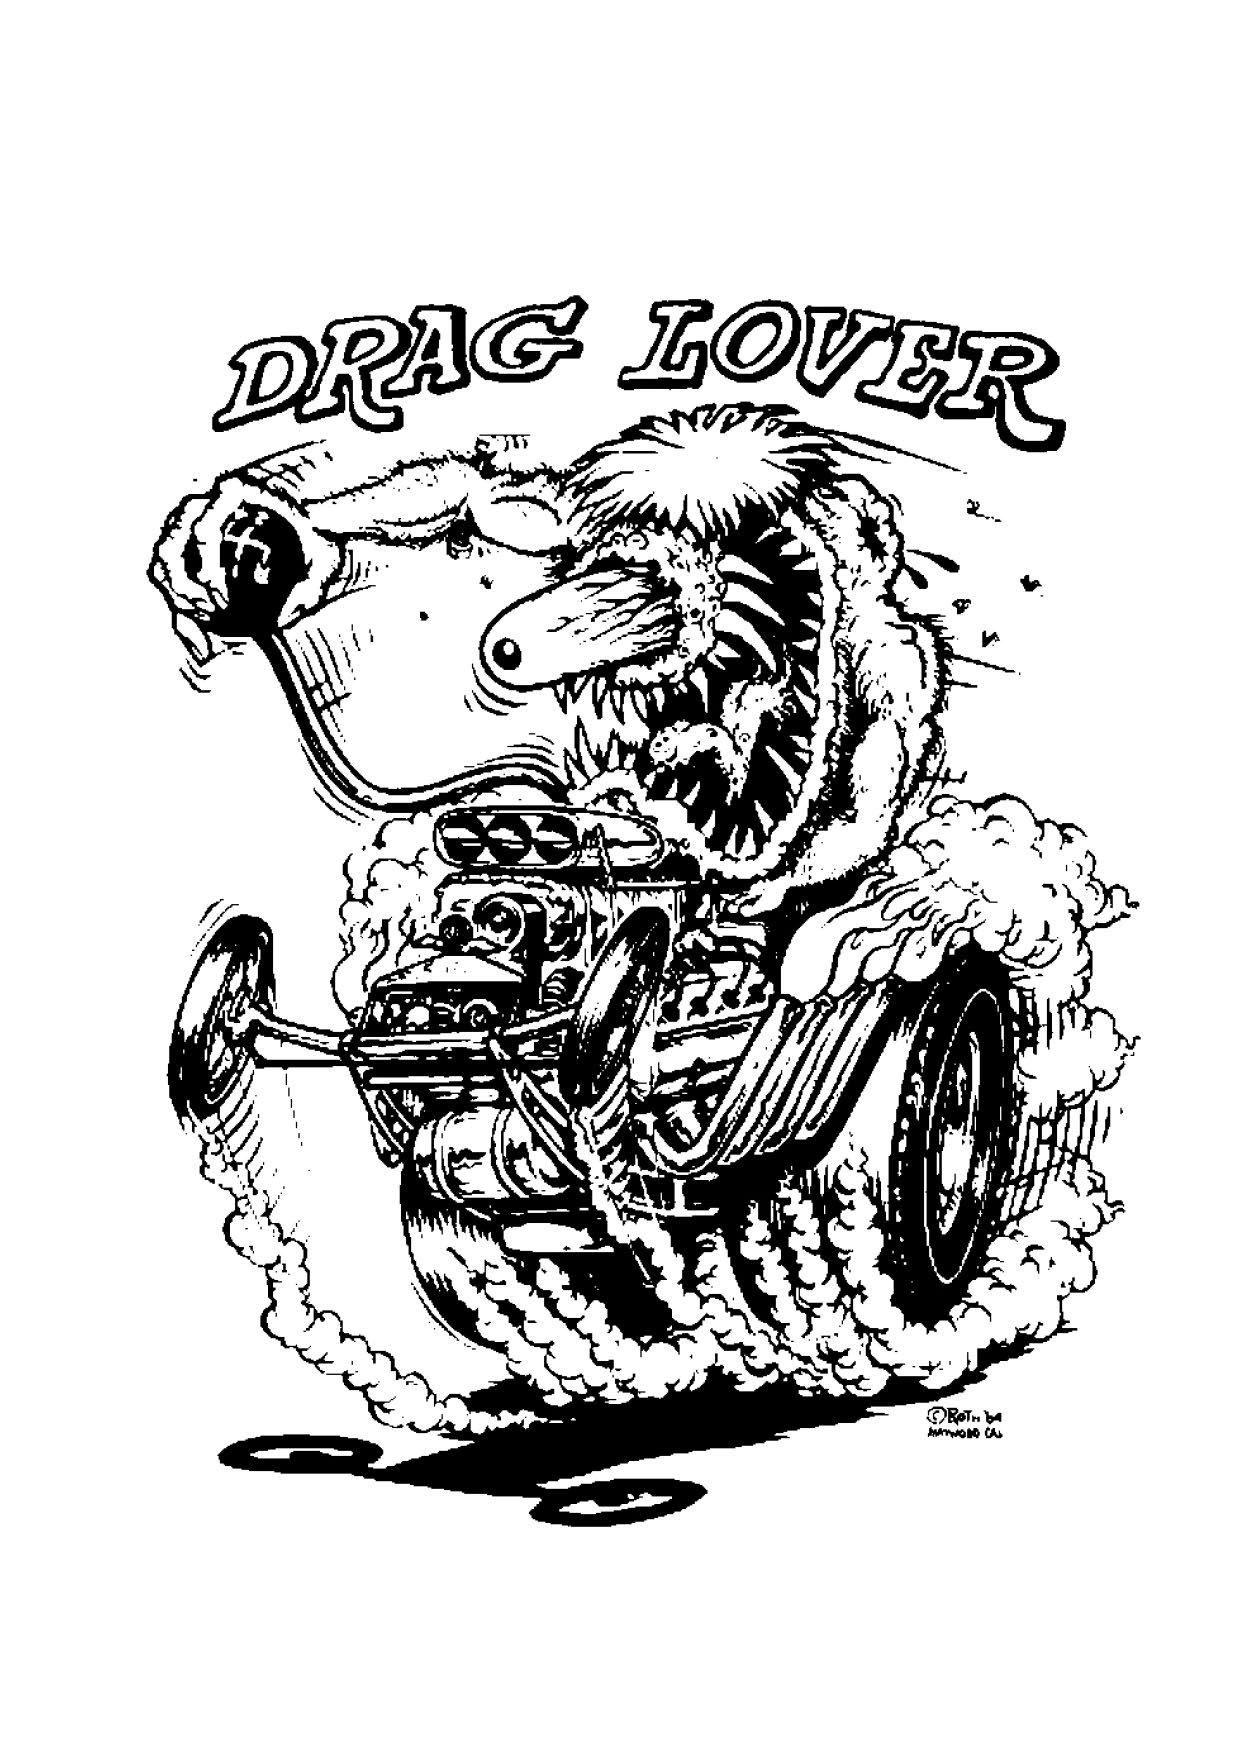 Drag Lover Cars coloring pages, Coloring book art, Ed